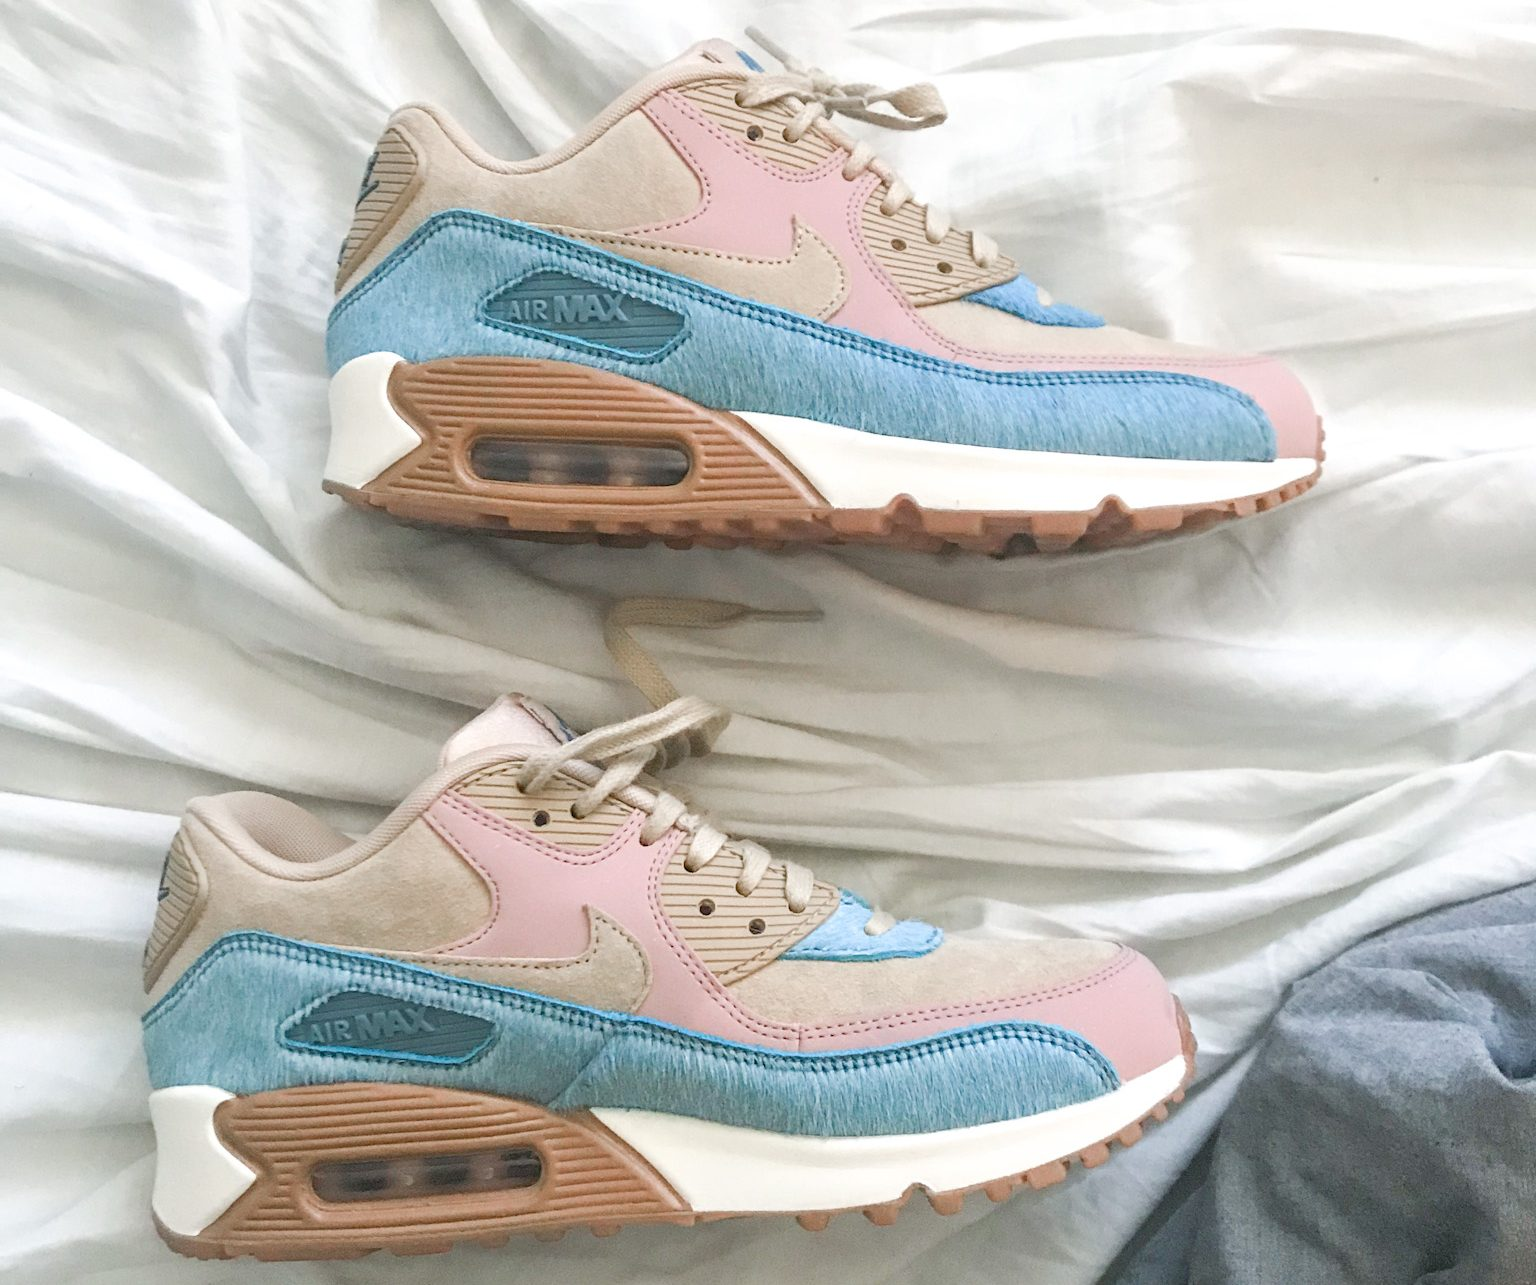 Top find thrifting Air Max